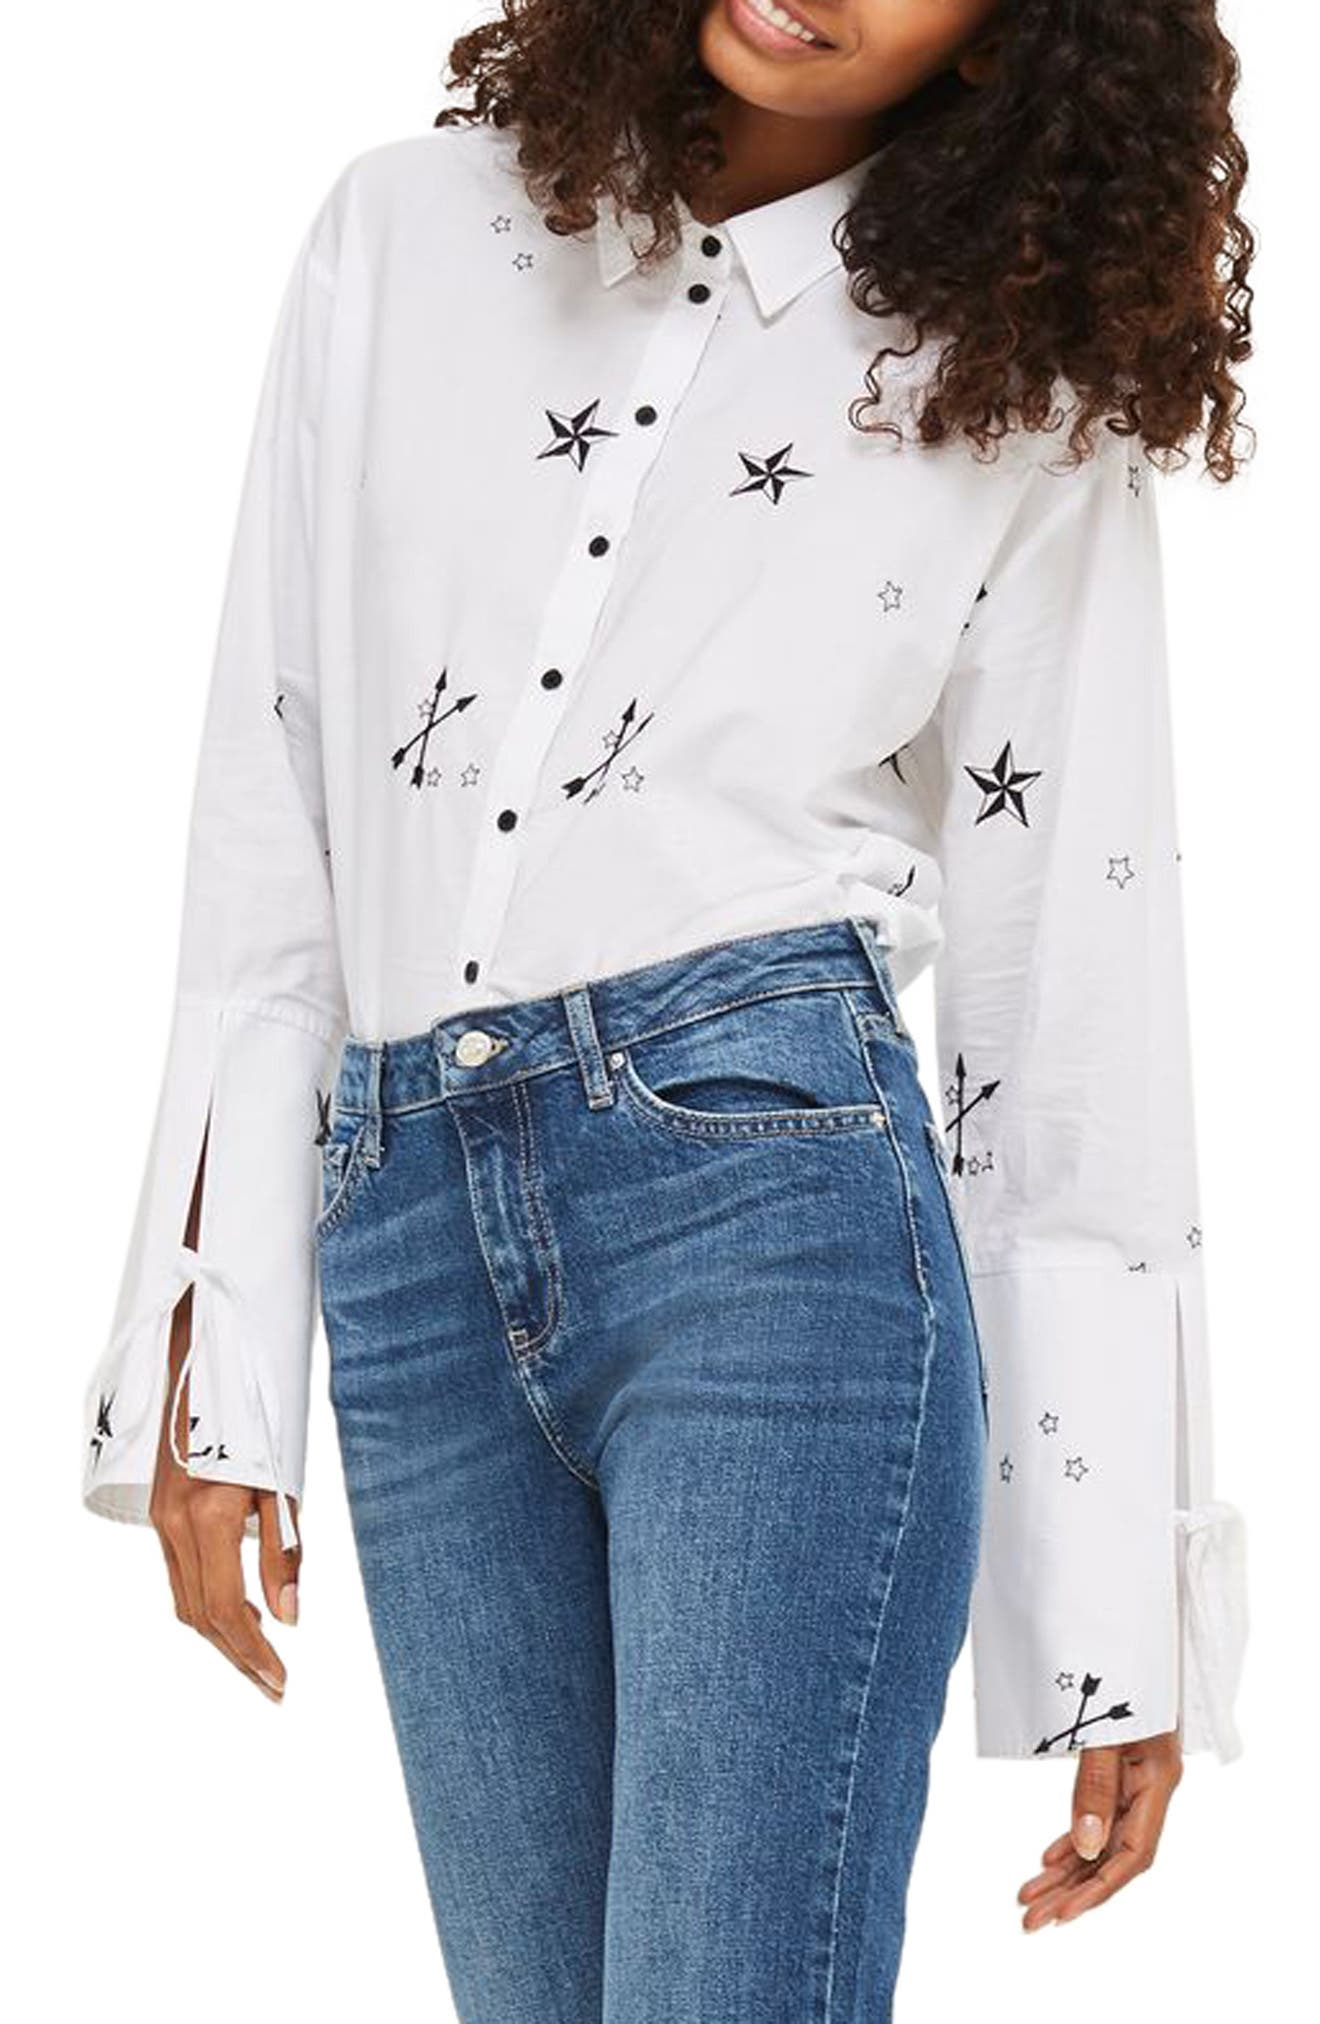 Star Embroidered Shirt,                         Main,                         color, White Multi